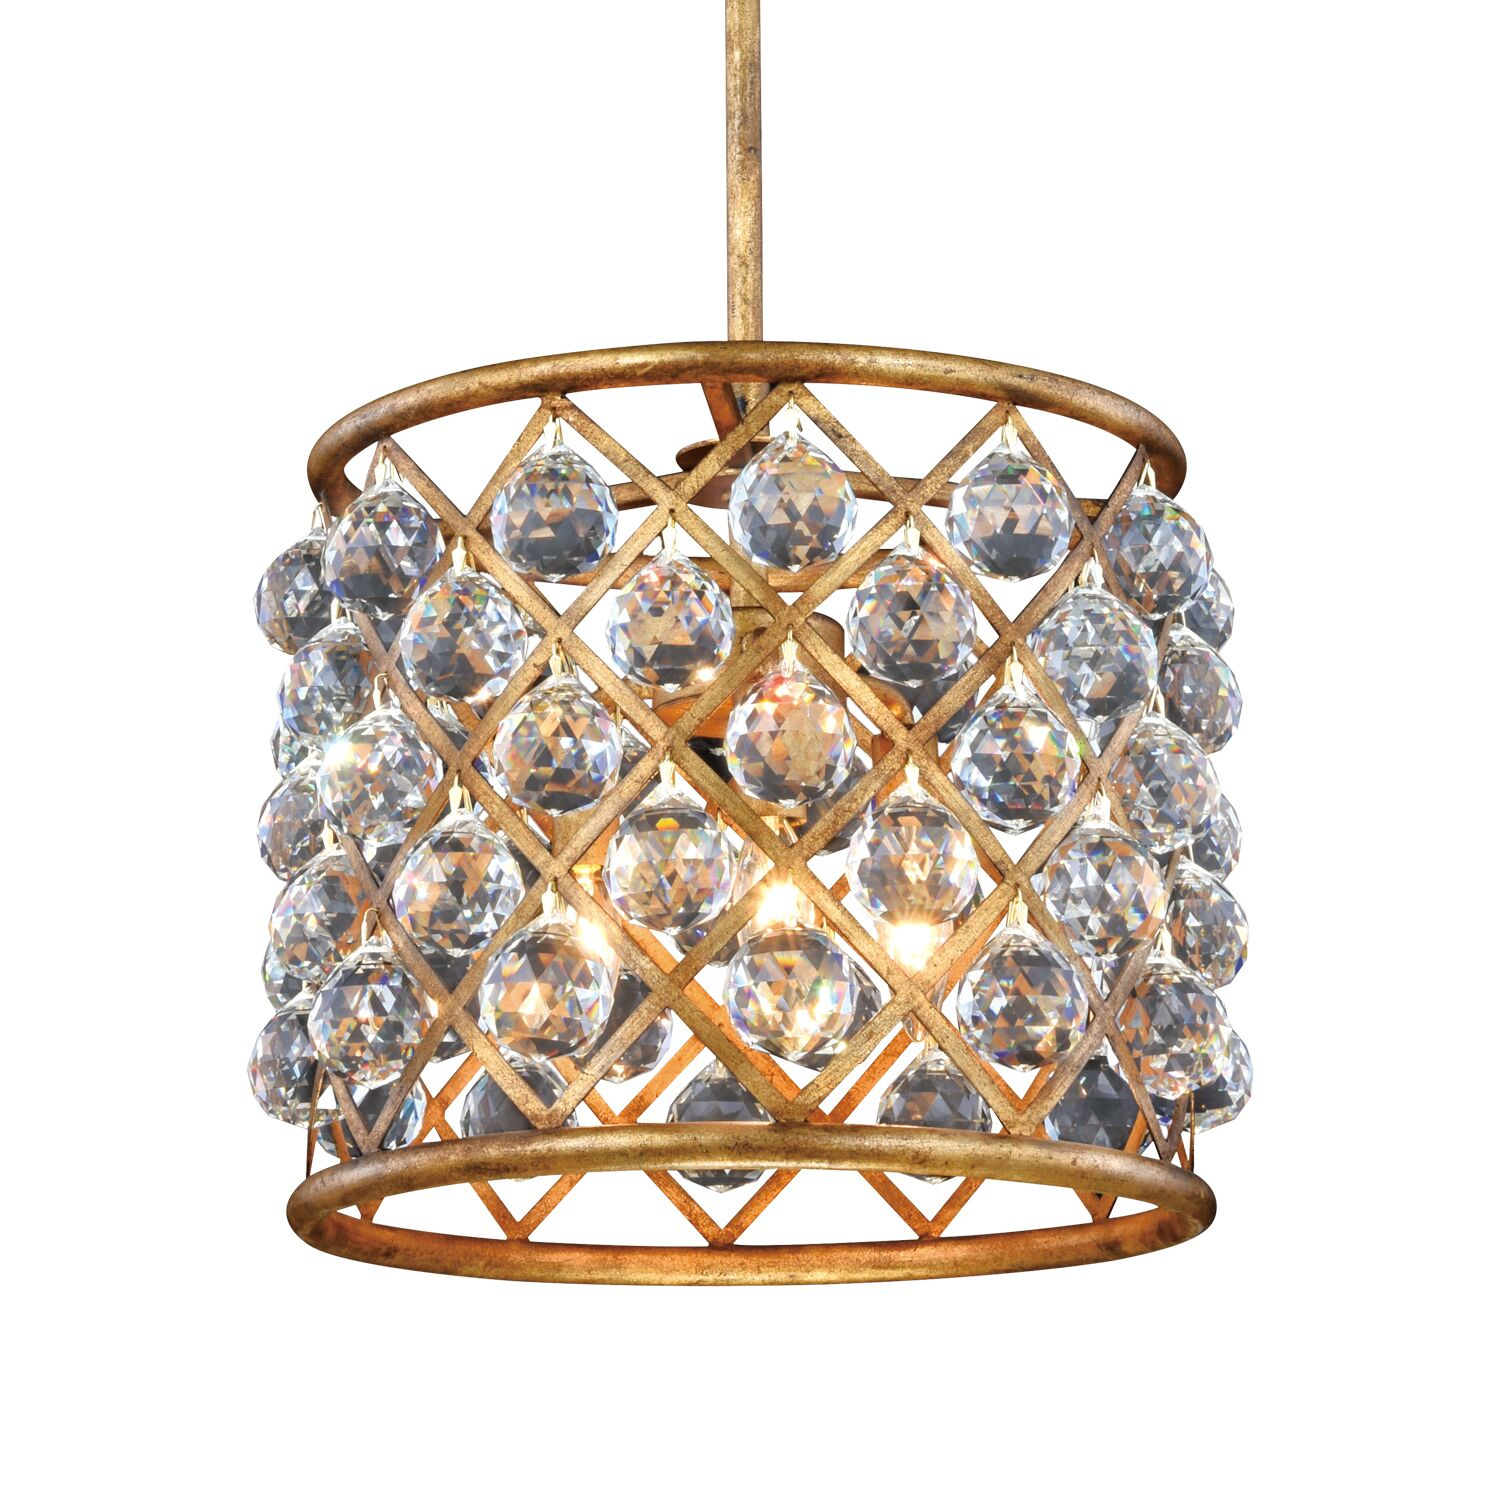 Lulsgate 4-Light Chandelier Shade Color: Clear, Finish: Gold, Bulb Type: LED